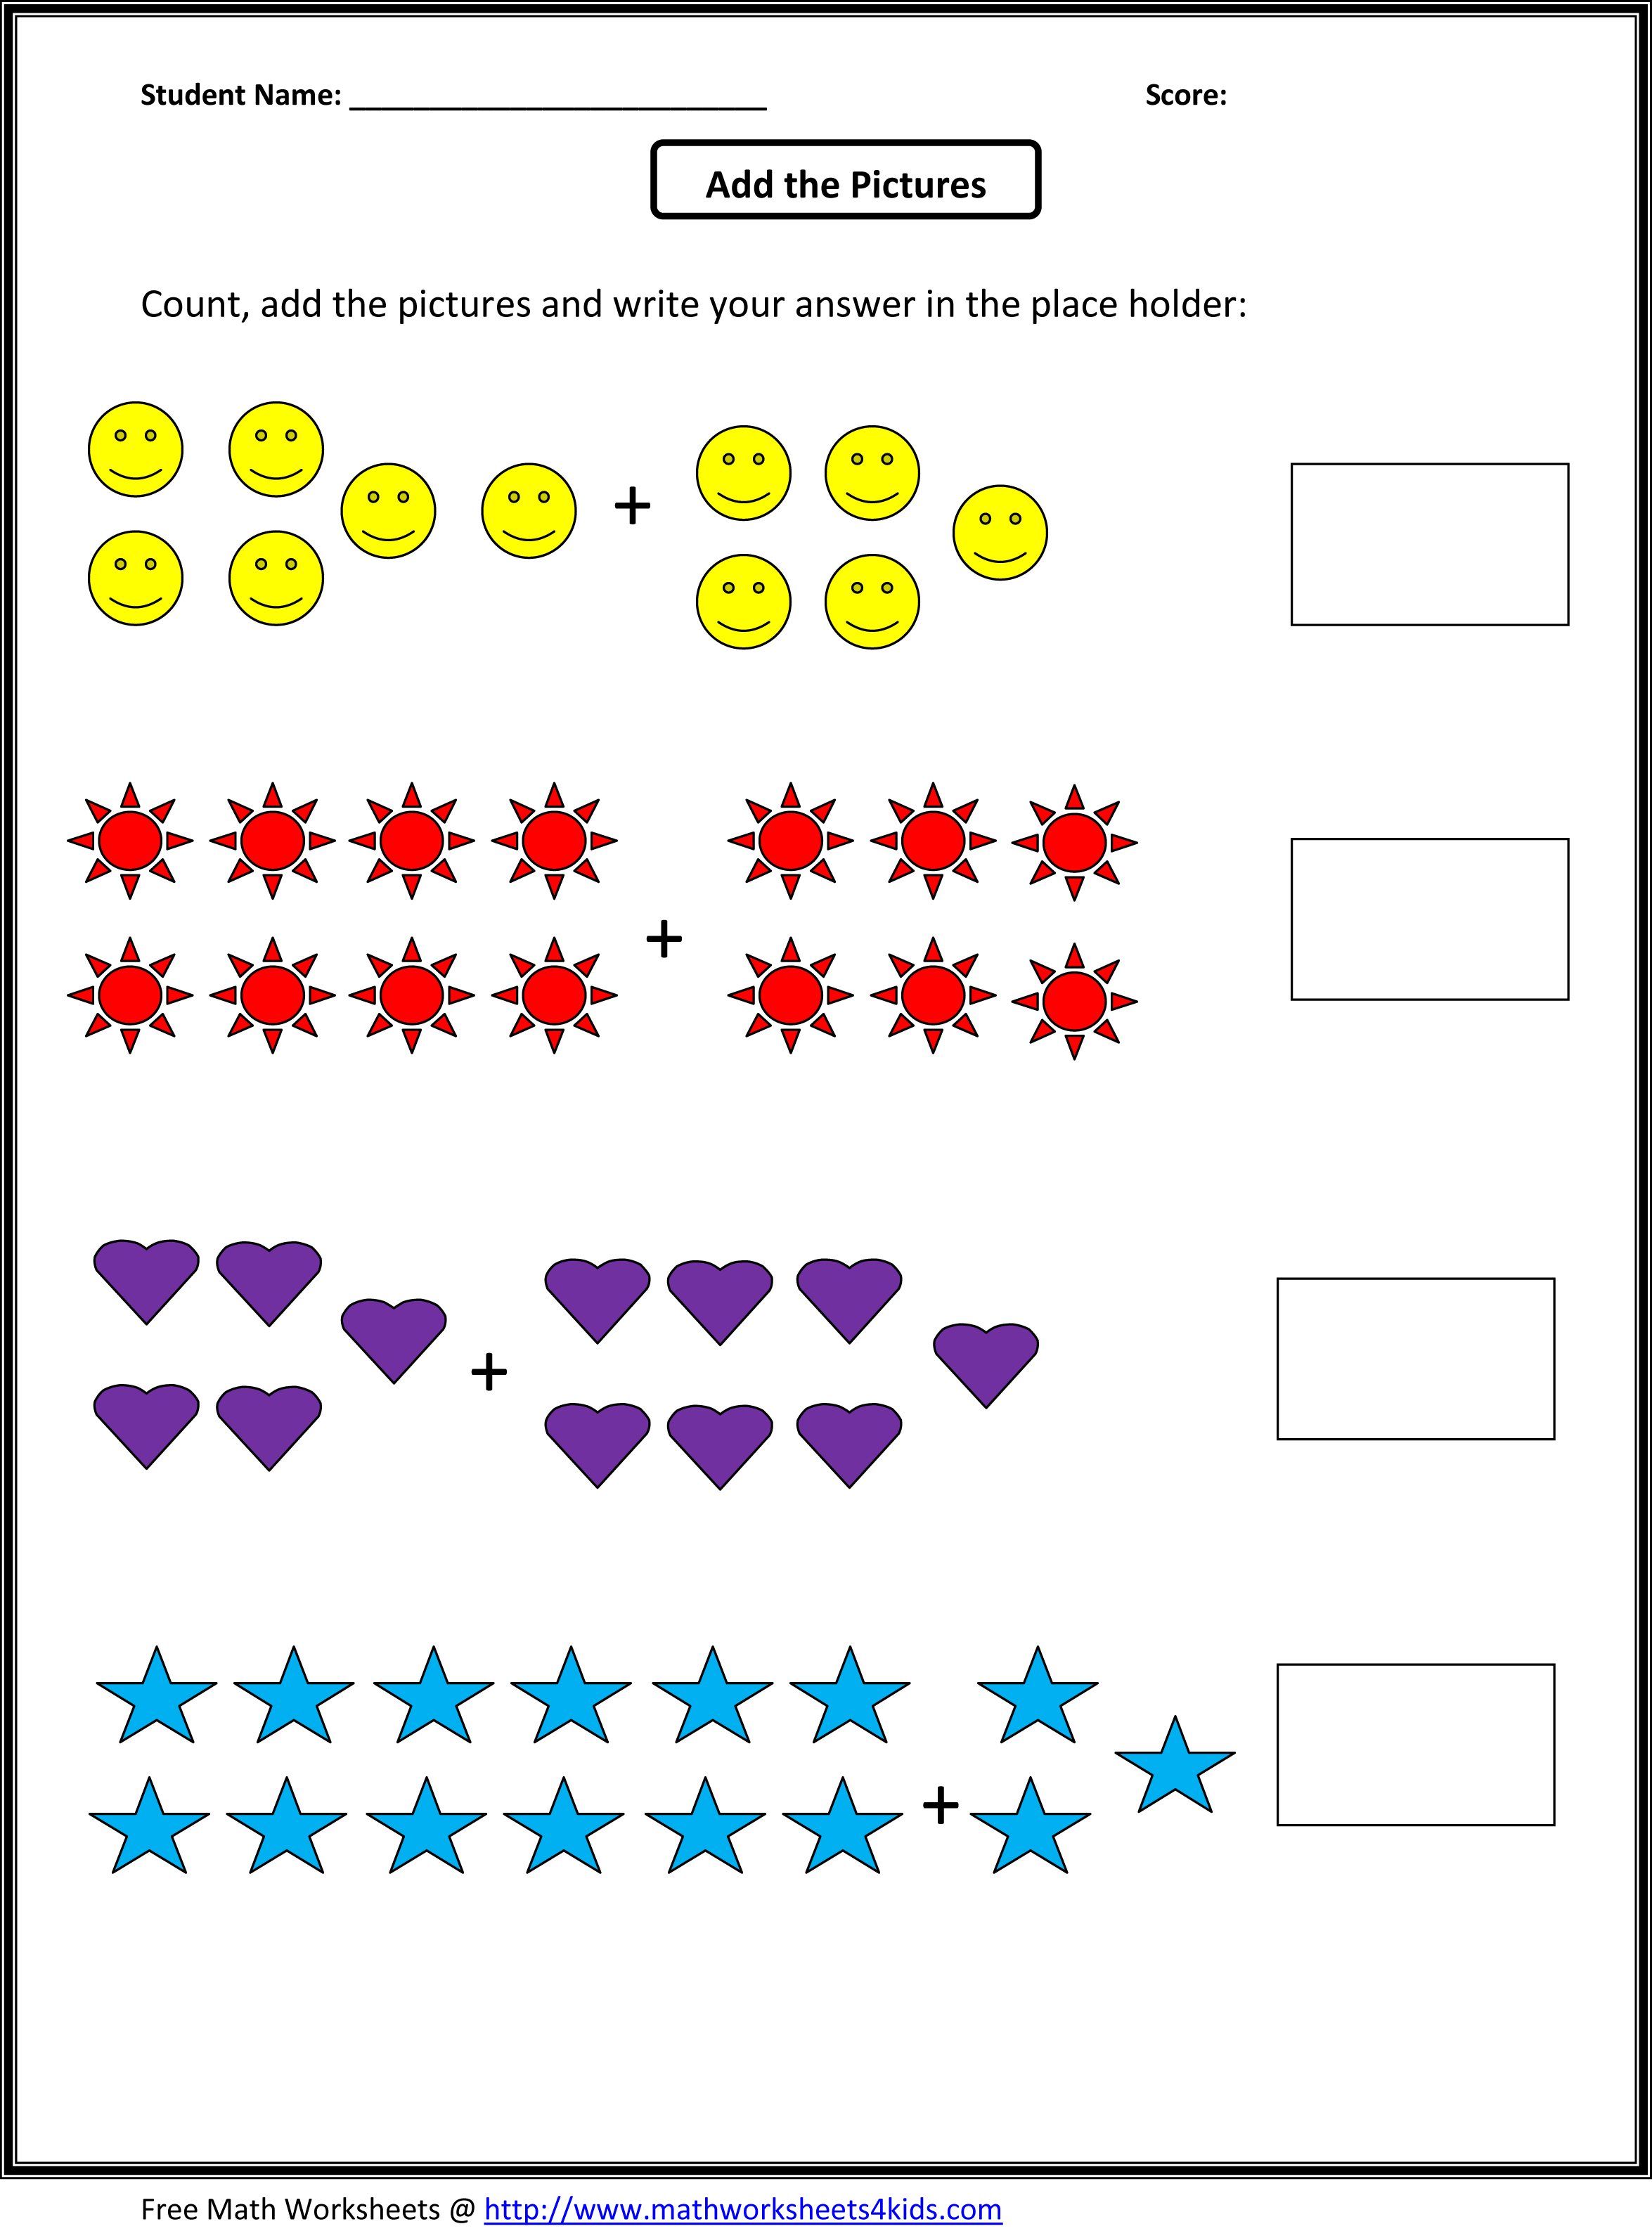 Weirdmailus  Winsome Grade  Maths Worksheet  Reocurent With Fetching Math Worksheets For St Grade Free  Reocurent With Extraordinary Opposites Worksheets For Grade  Also Straight Line Worksheet In Addition Free Printable Worksheets For Kidsscience And Maths Year  Worksheets As Well As Healthy Food Worksheets For Kids Additionally Difficult Color By Number Worksheets From Reocurentcom With Weirdmailus  Fetching Grade  Maths Worksheet  Reocurent With Extraordinary Math Worksheets For St Grade Free  Reocurent And Winsome Opposites Worksheets For Grade  Also Straight Line Worksheet In Addition Free Printable Worksheets For Kidsscience From Reocurentcom